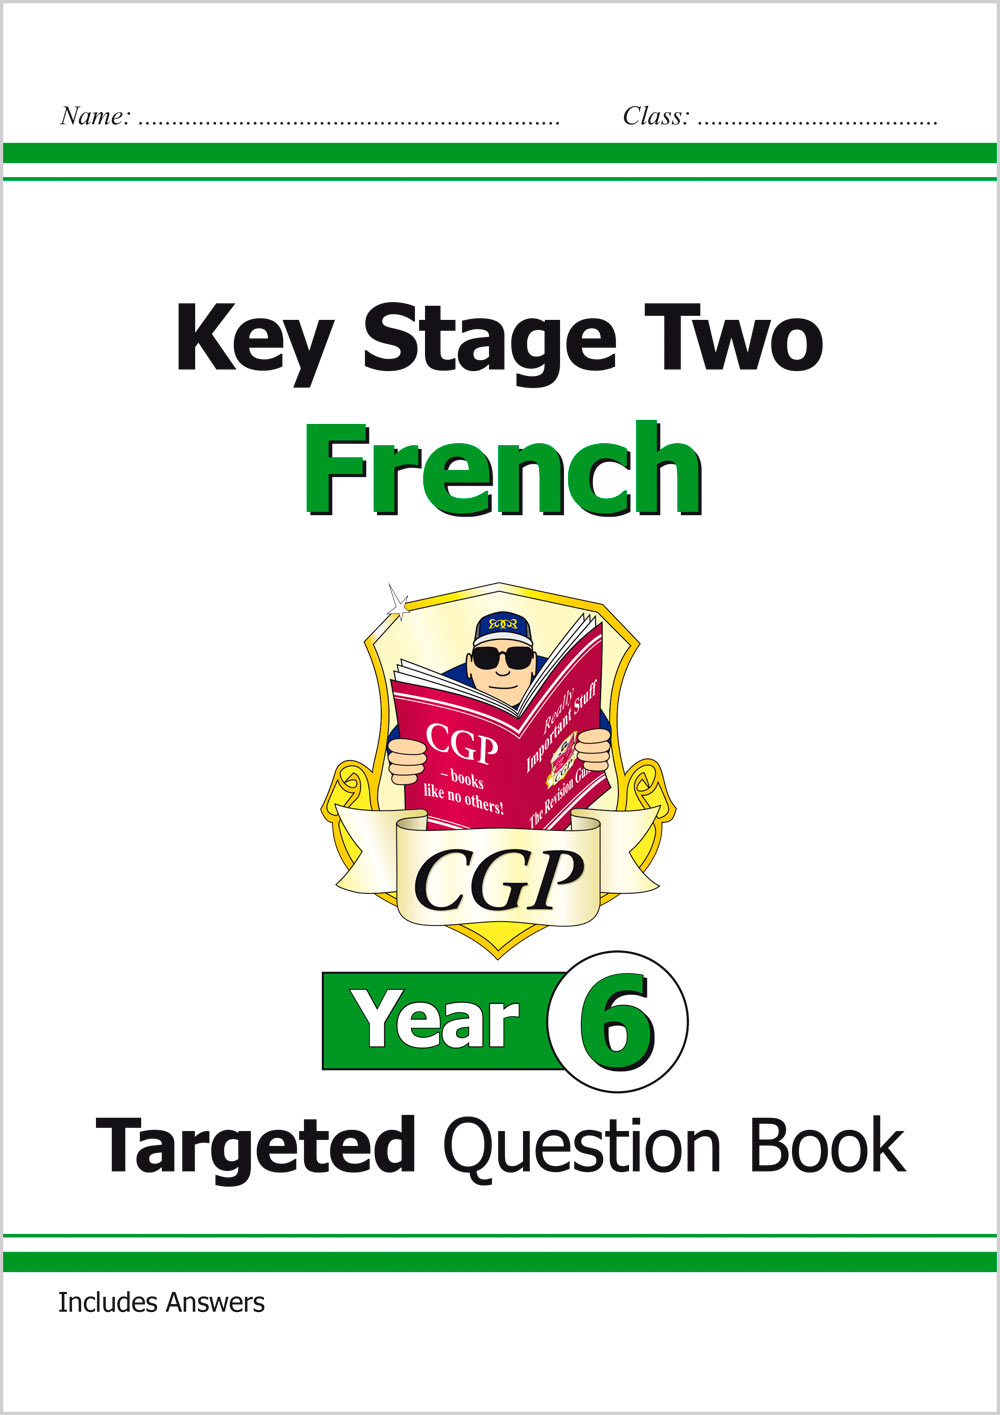 F6Q21 - New KS2 French Targeted Question Book - Year 6